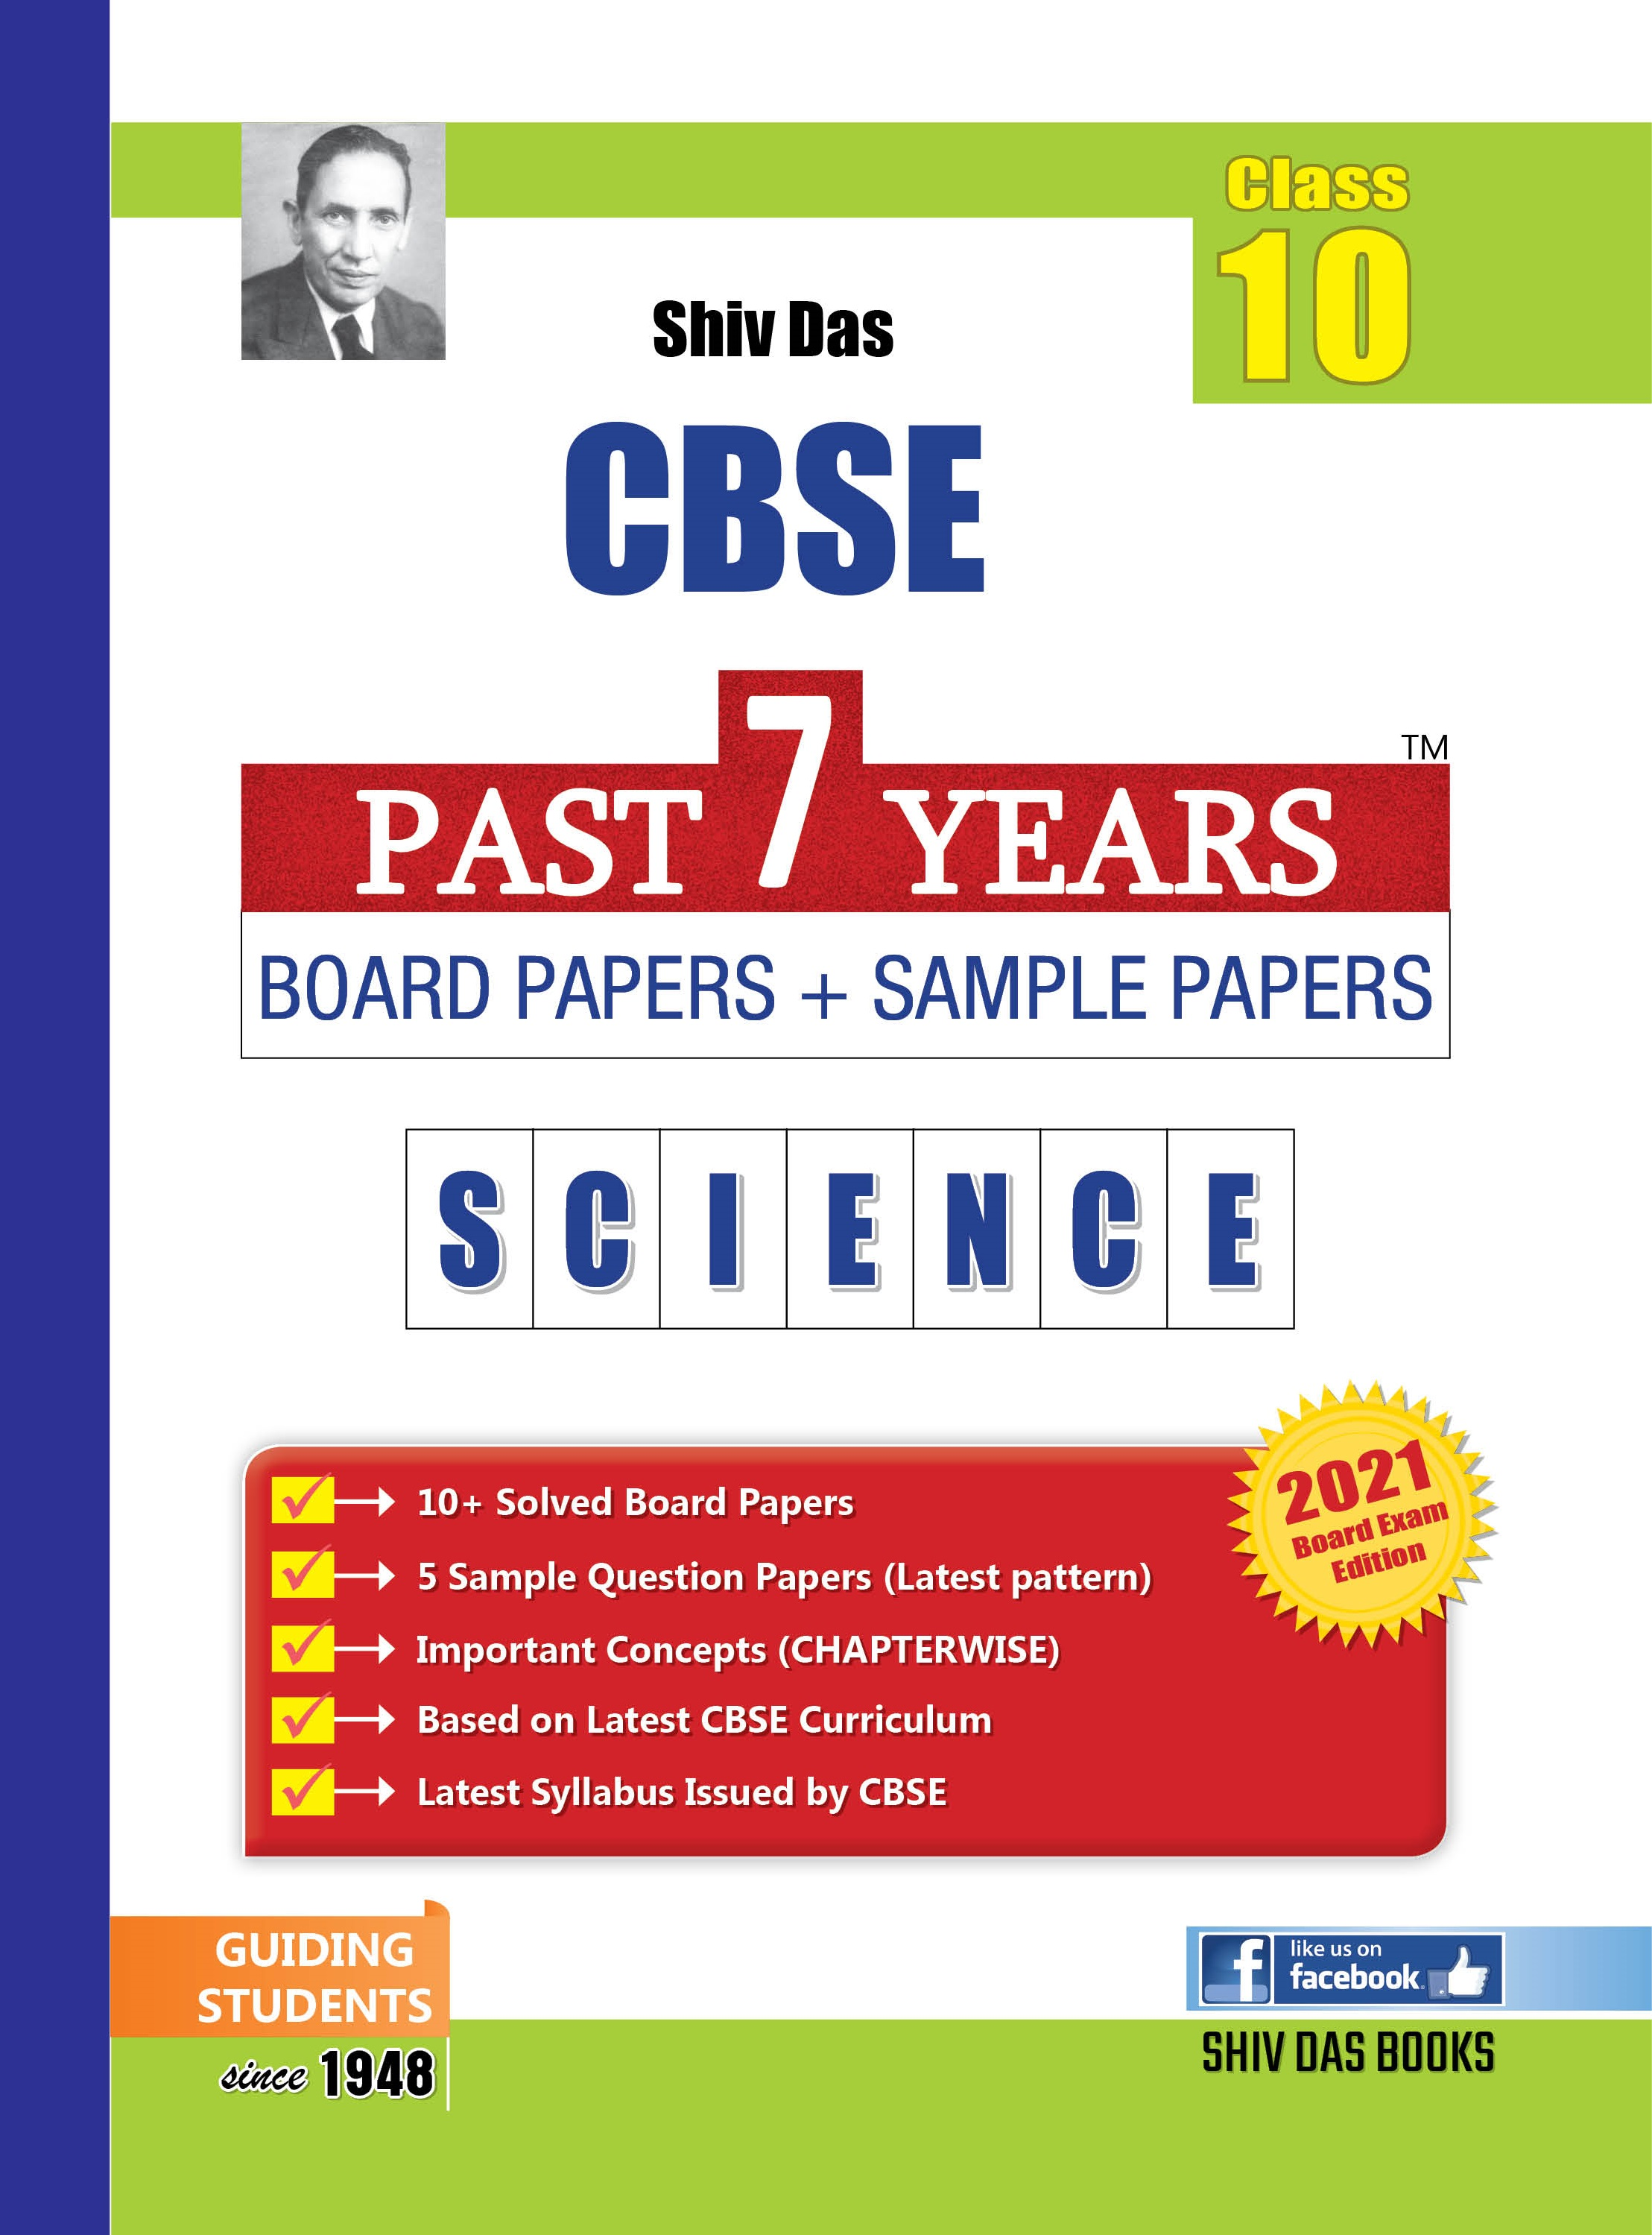 CBSE Past 7 Years Solved Board Papers and Sample Papers for Class 10 Science By SHIVDAS (2021 Board Exam Edition)